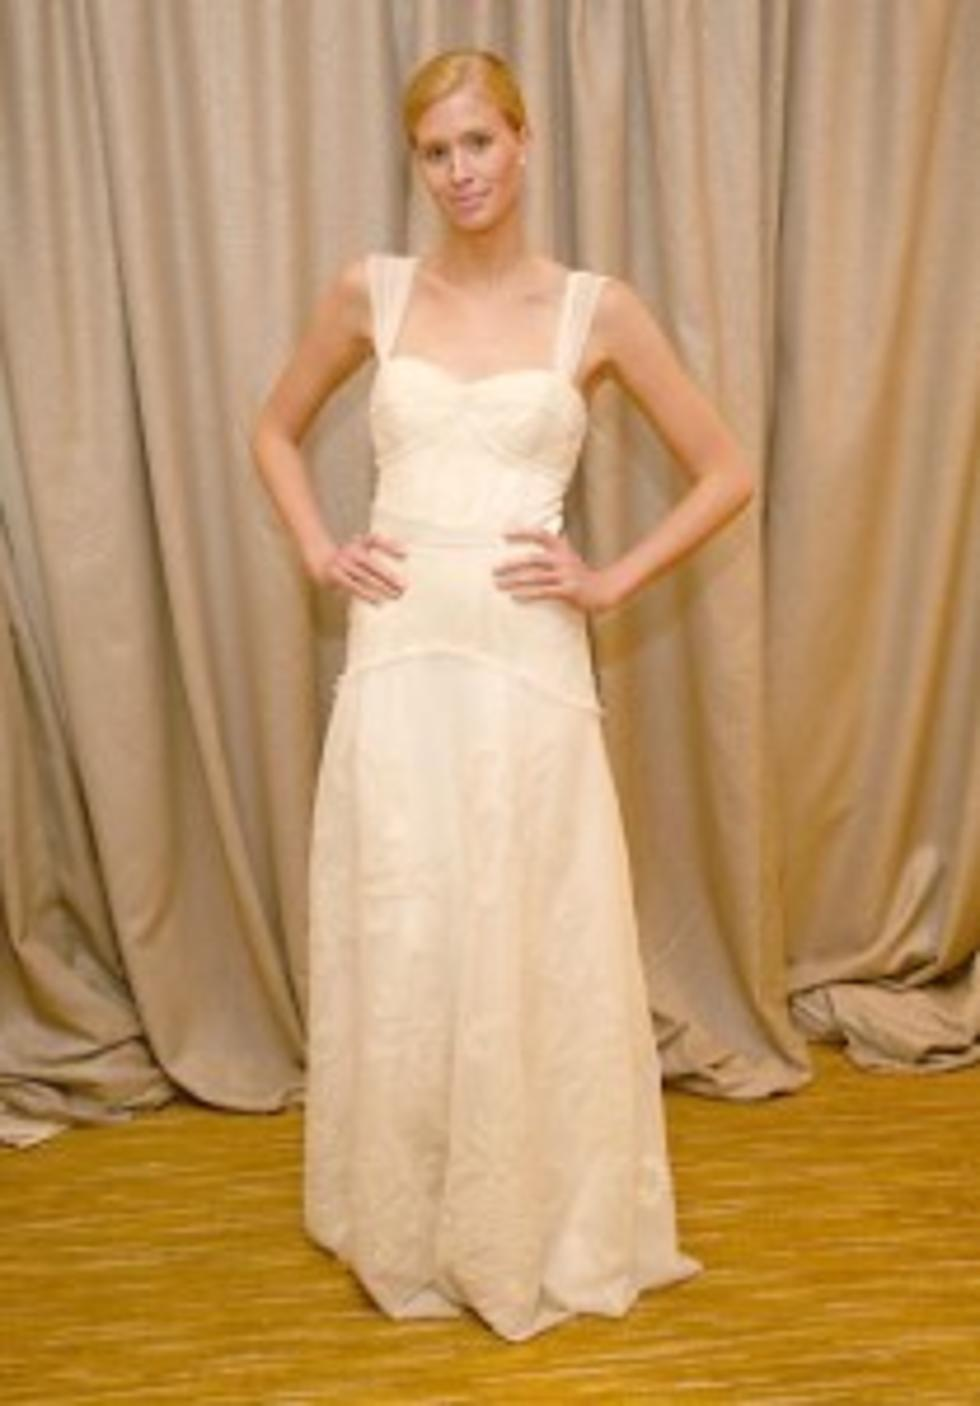 Costco Will Sell Designer Wedding Dresses